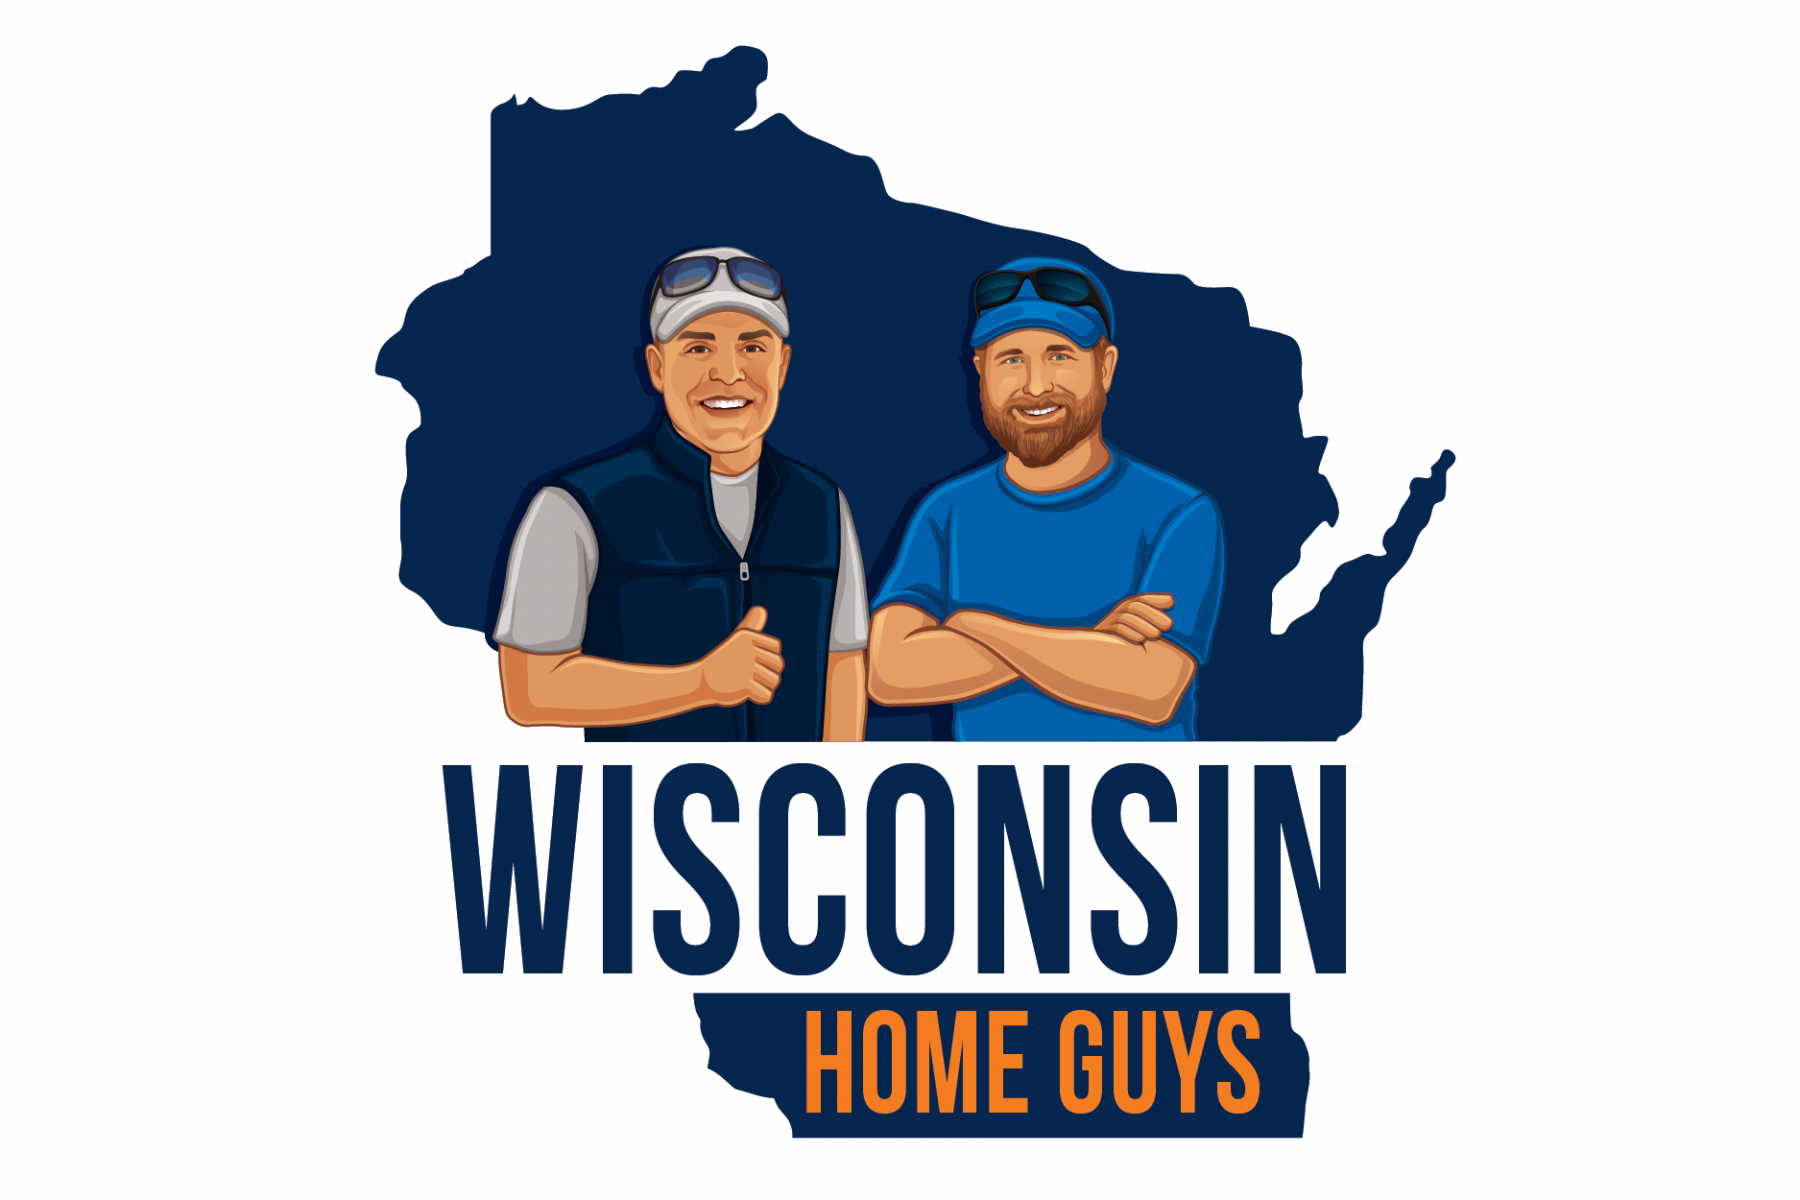 Wisconsin Home Guys logo